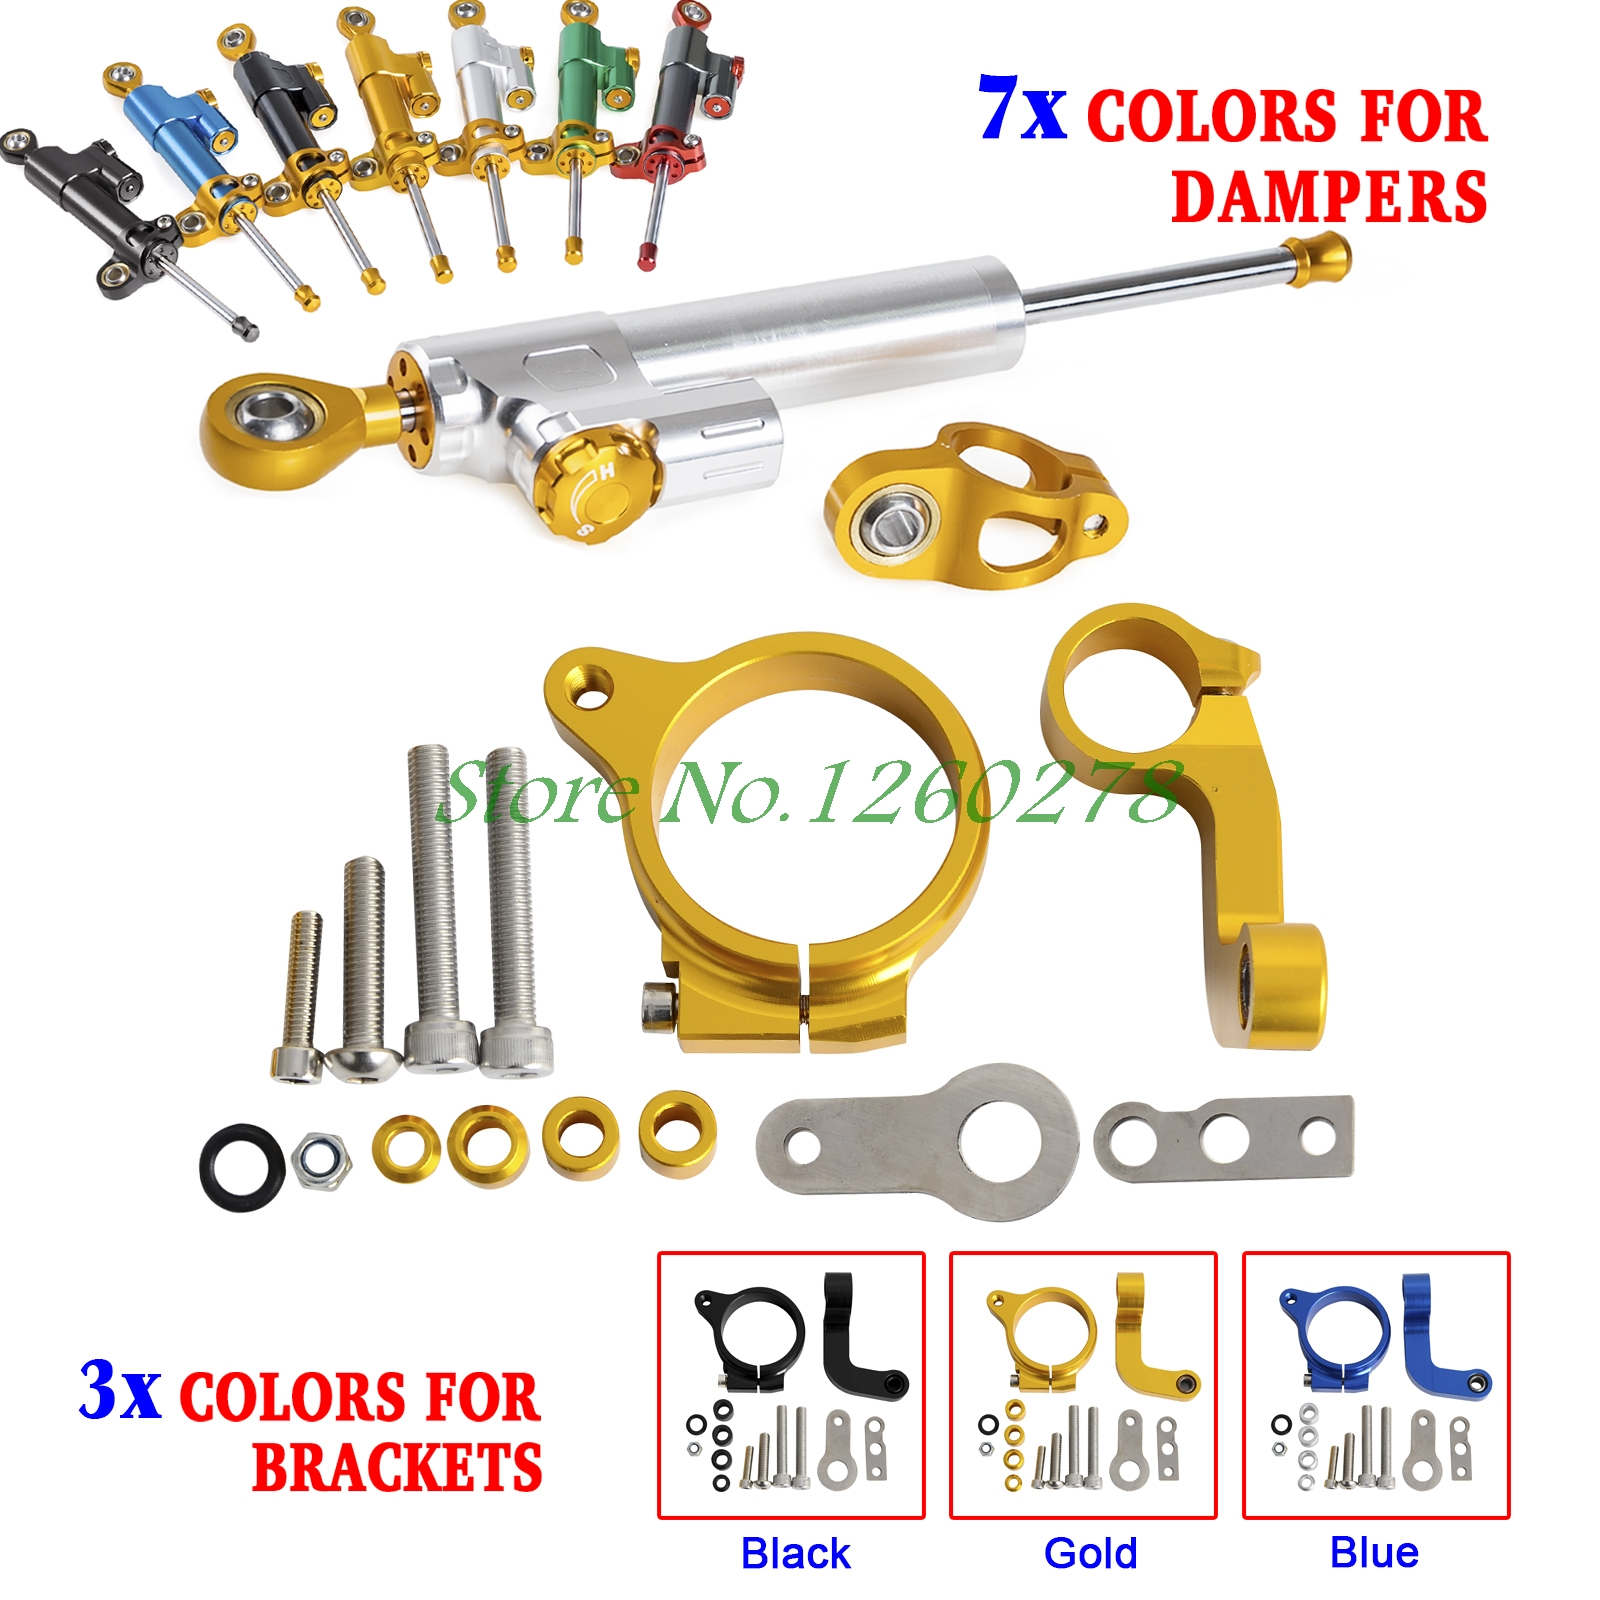 Motorcycle CNC Steering Damper Stabilizer & Bracket For BMW R1200GS LC 2013 2014 only (Water Cooled)